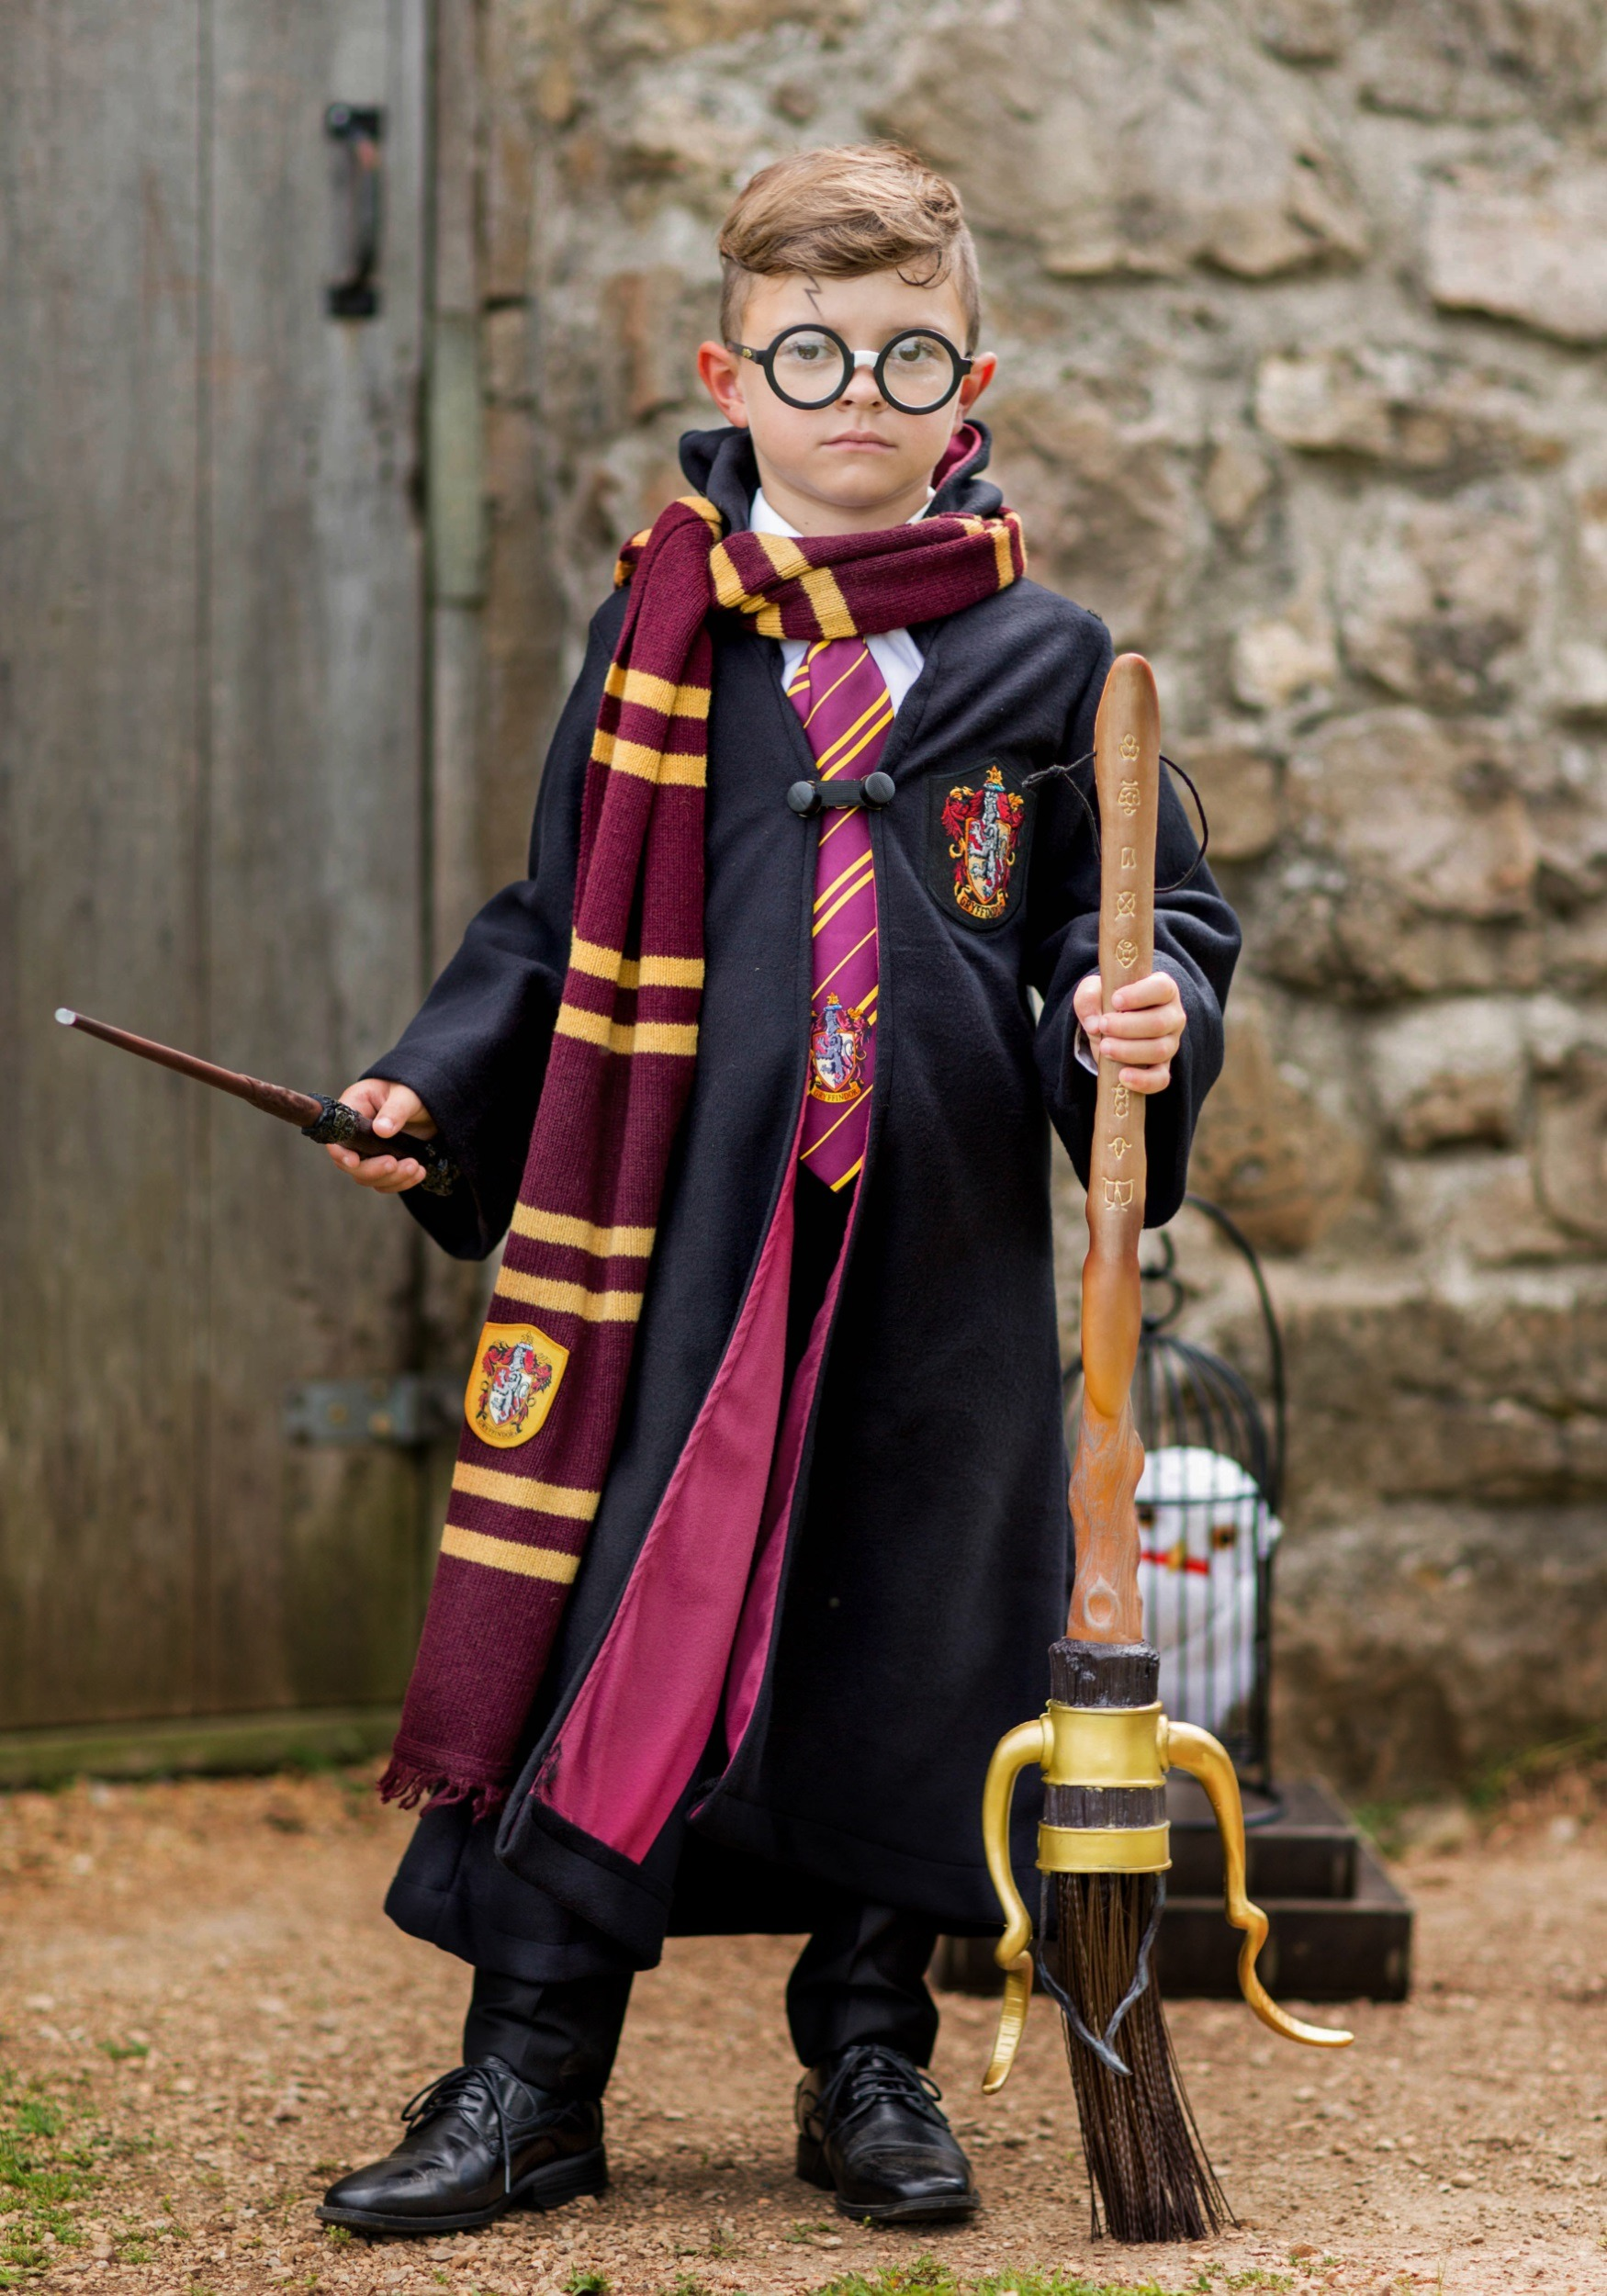 a4ccbbd02c0 Kids Harry Potter Costumes - HalloweenCostumes.com